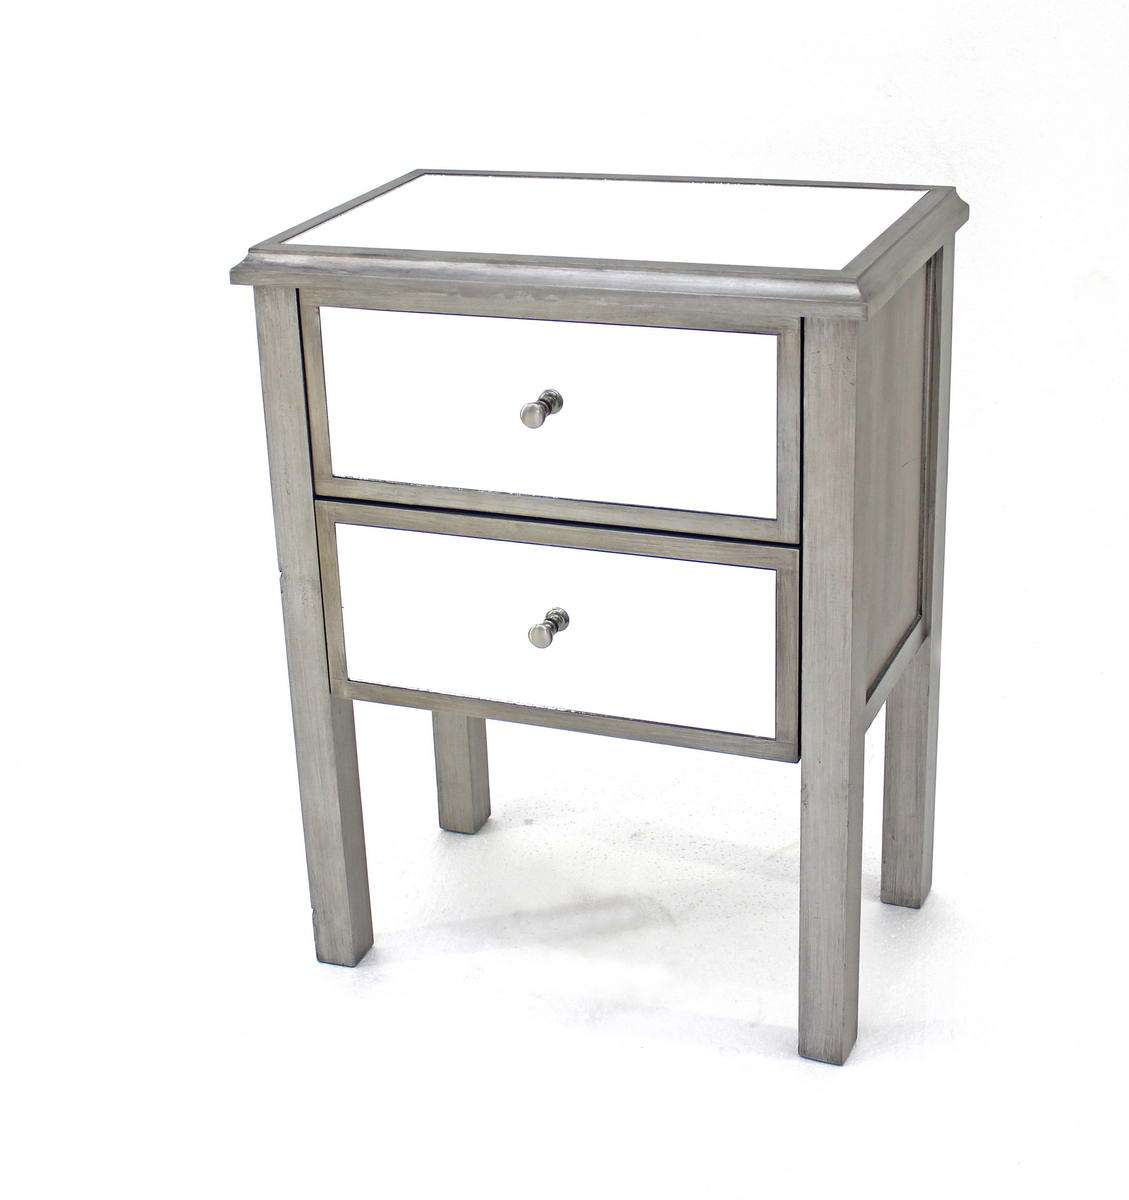 teton home white washed brown wood drawer accent table with mirror mirrored accents outdoor end ideas patio lounger small tall cool nightstands design antique black coffee rocking